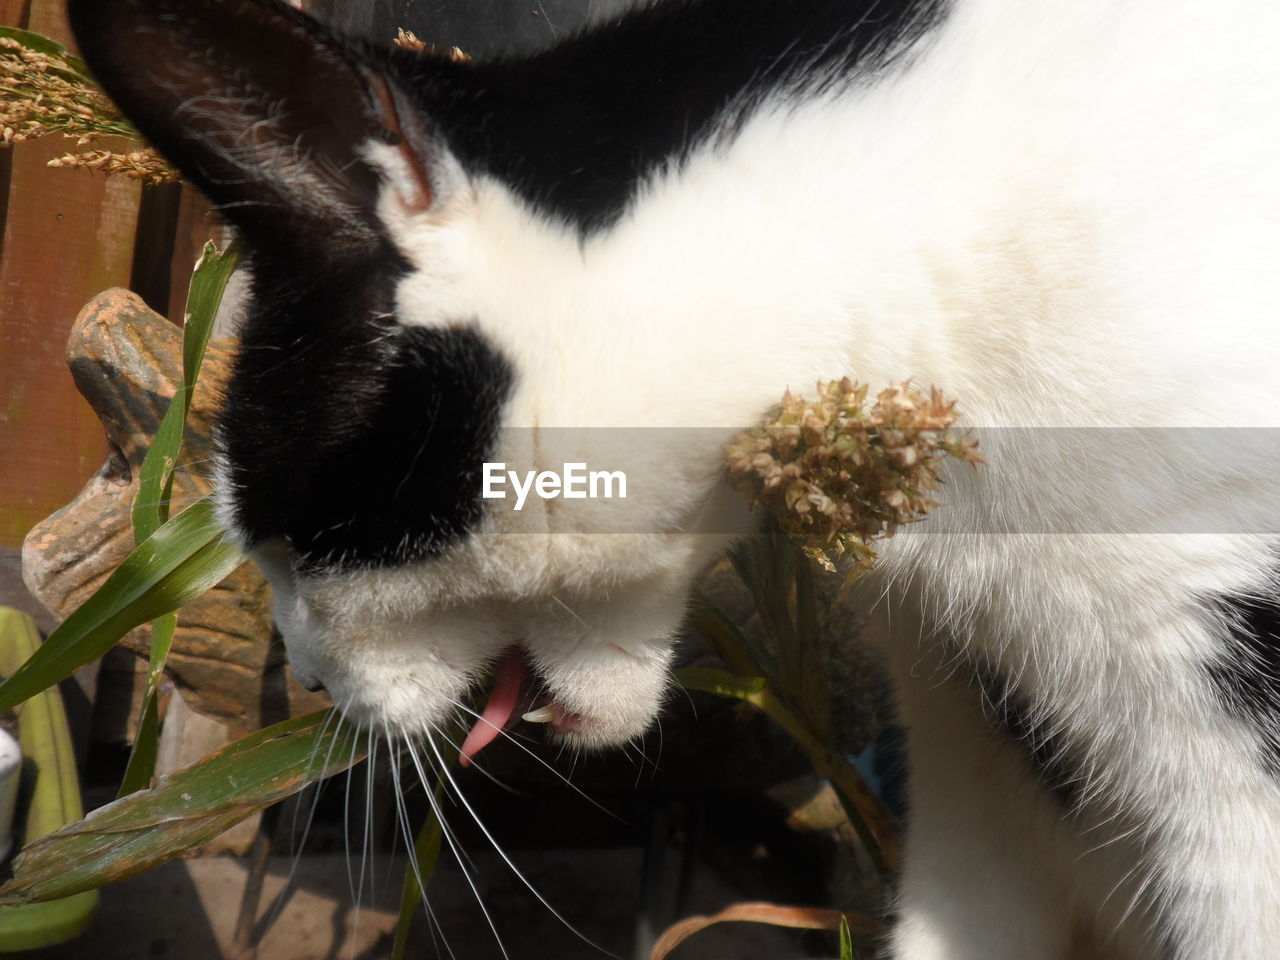 mammal, animal themes, animal, domestic animals, domestic, one animal, pets, vertebrate, cat, feline, domestic cat, close-up, no people, animal body part, focus on foreground, whisker, white color, indoors, day, animal head